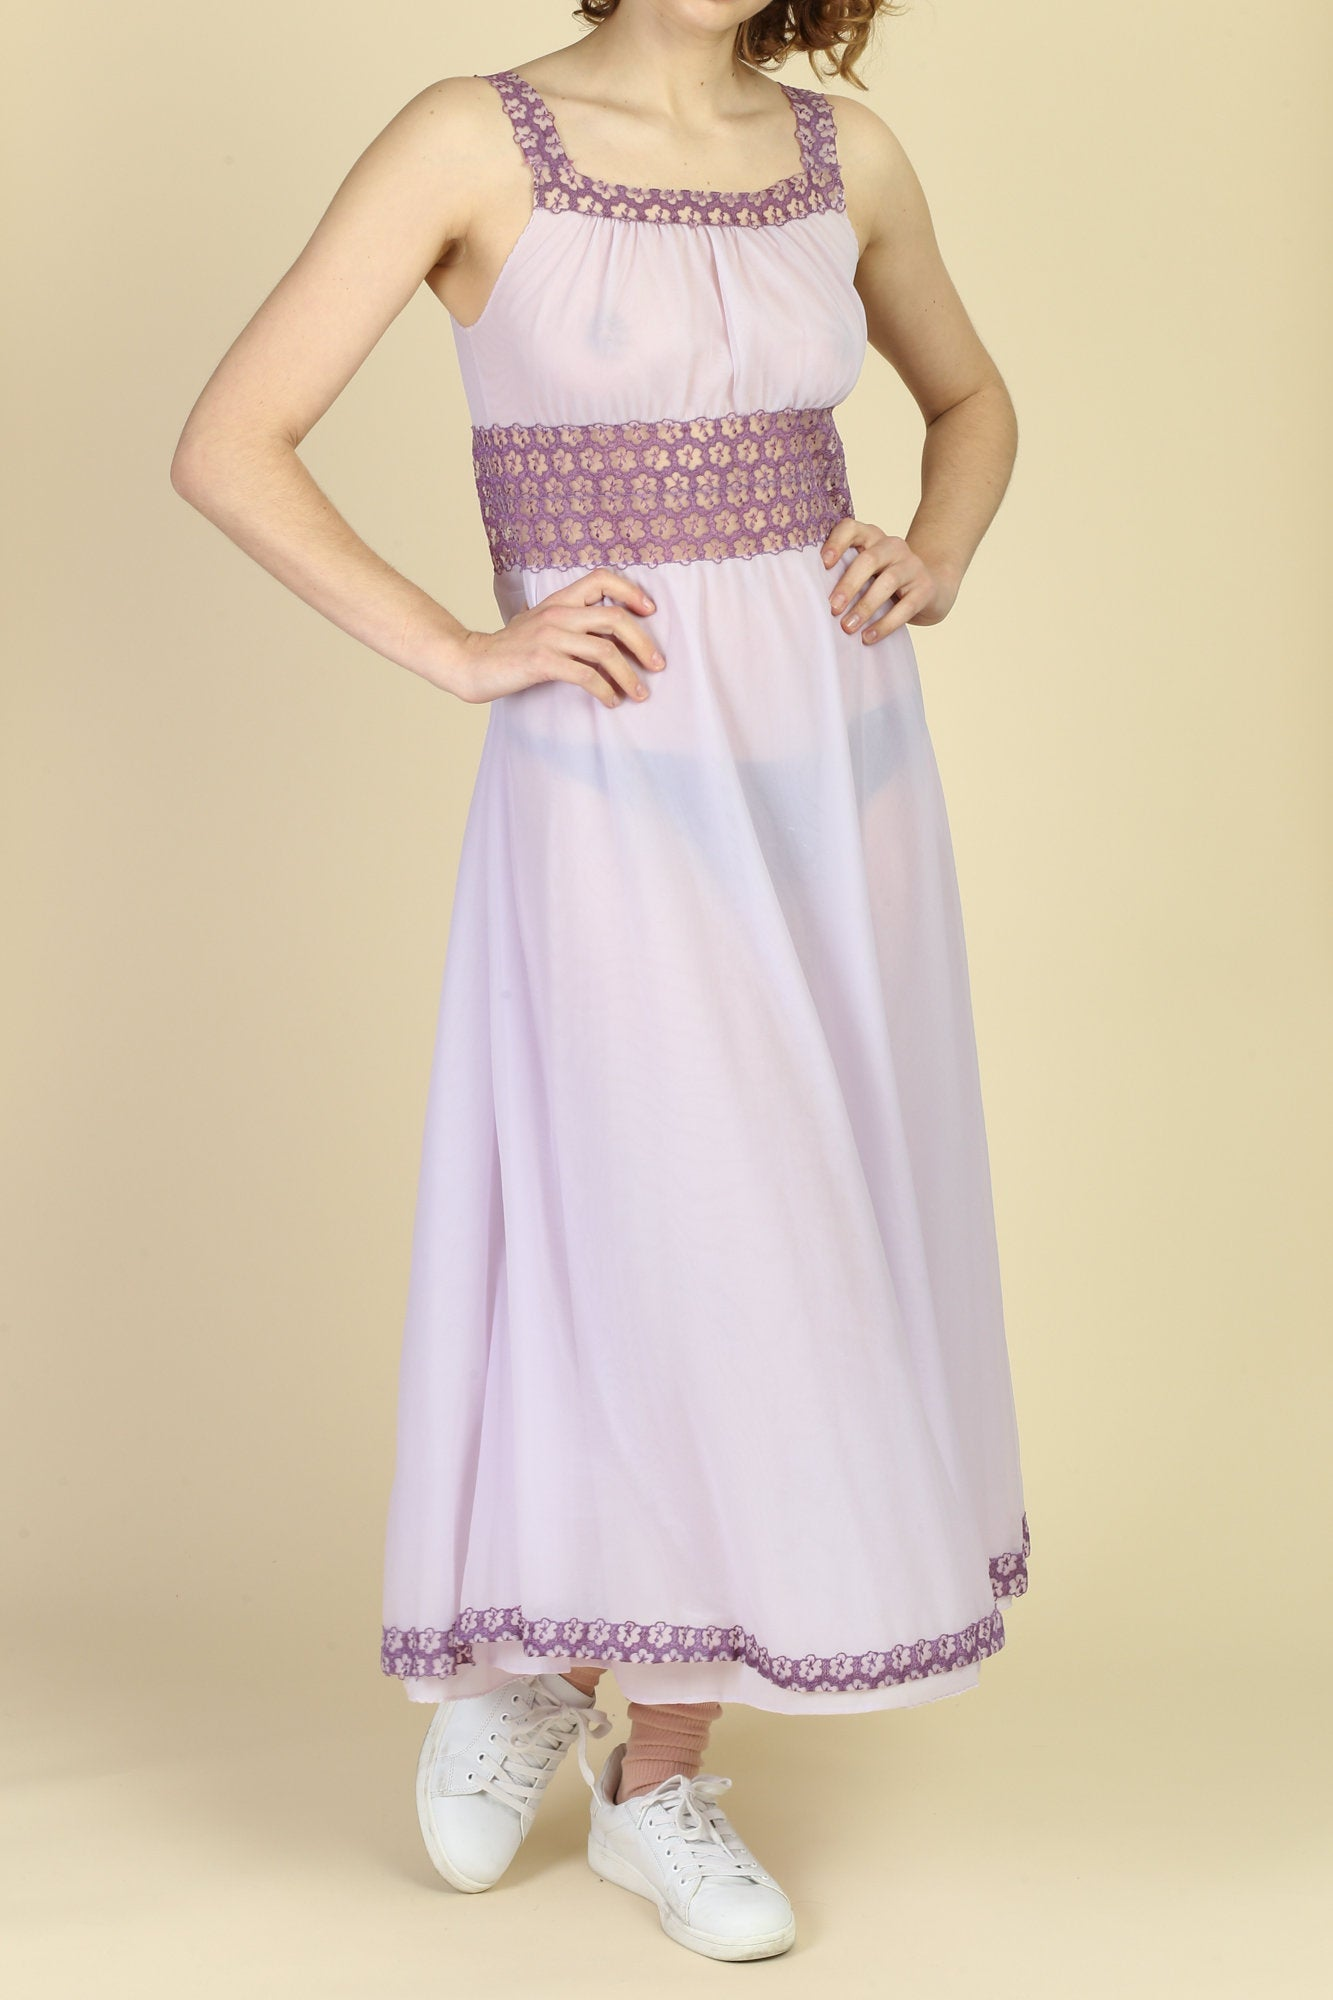 60s Lavender Floral Crochet Nightgown - Medium